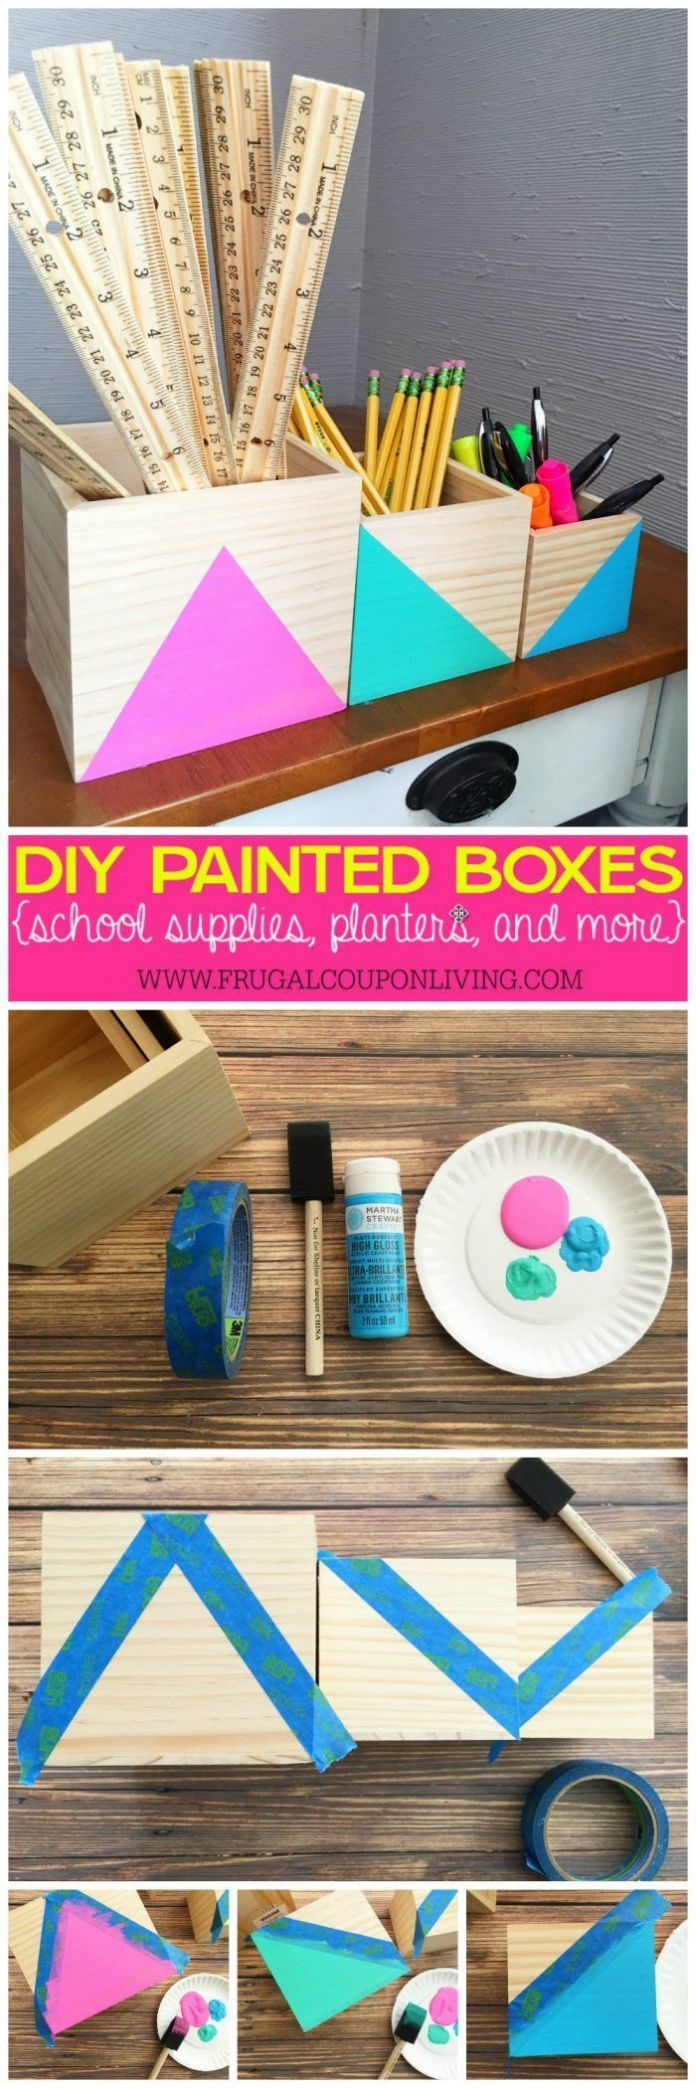 Best Diy Crafts Ideas For Your Home : DIY Painted Boxes  Great for School Supplies Planters & More on Frugal Coupon